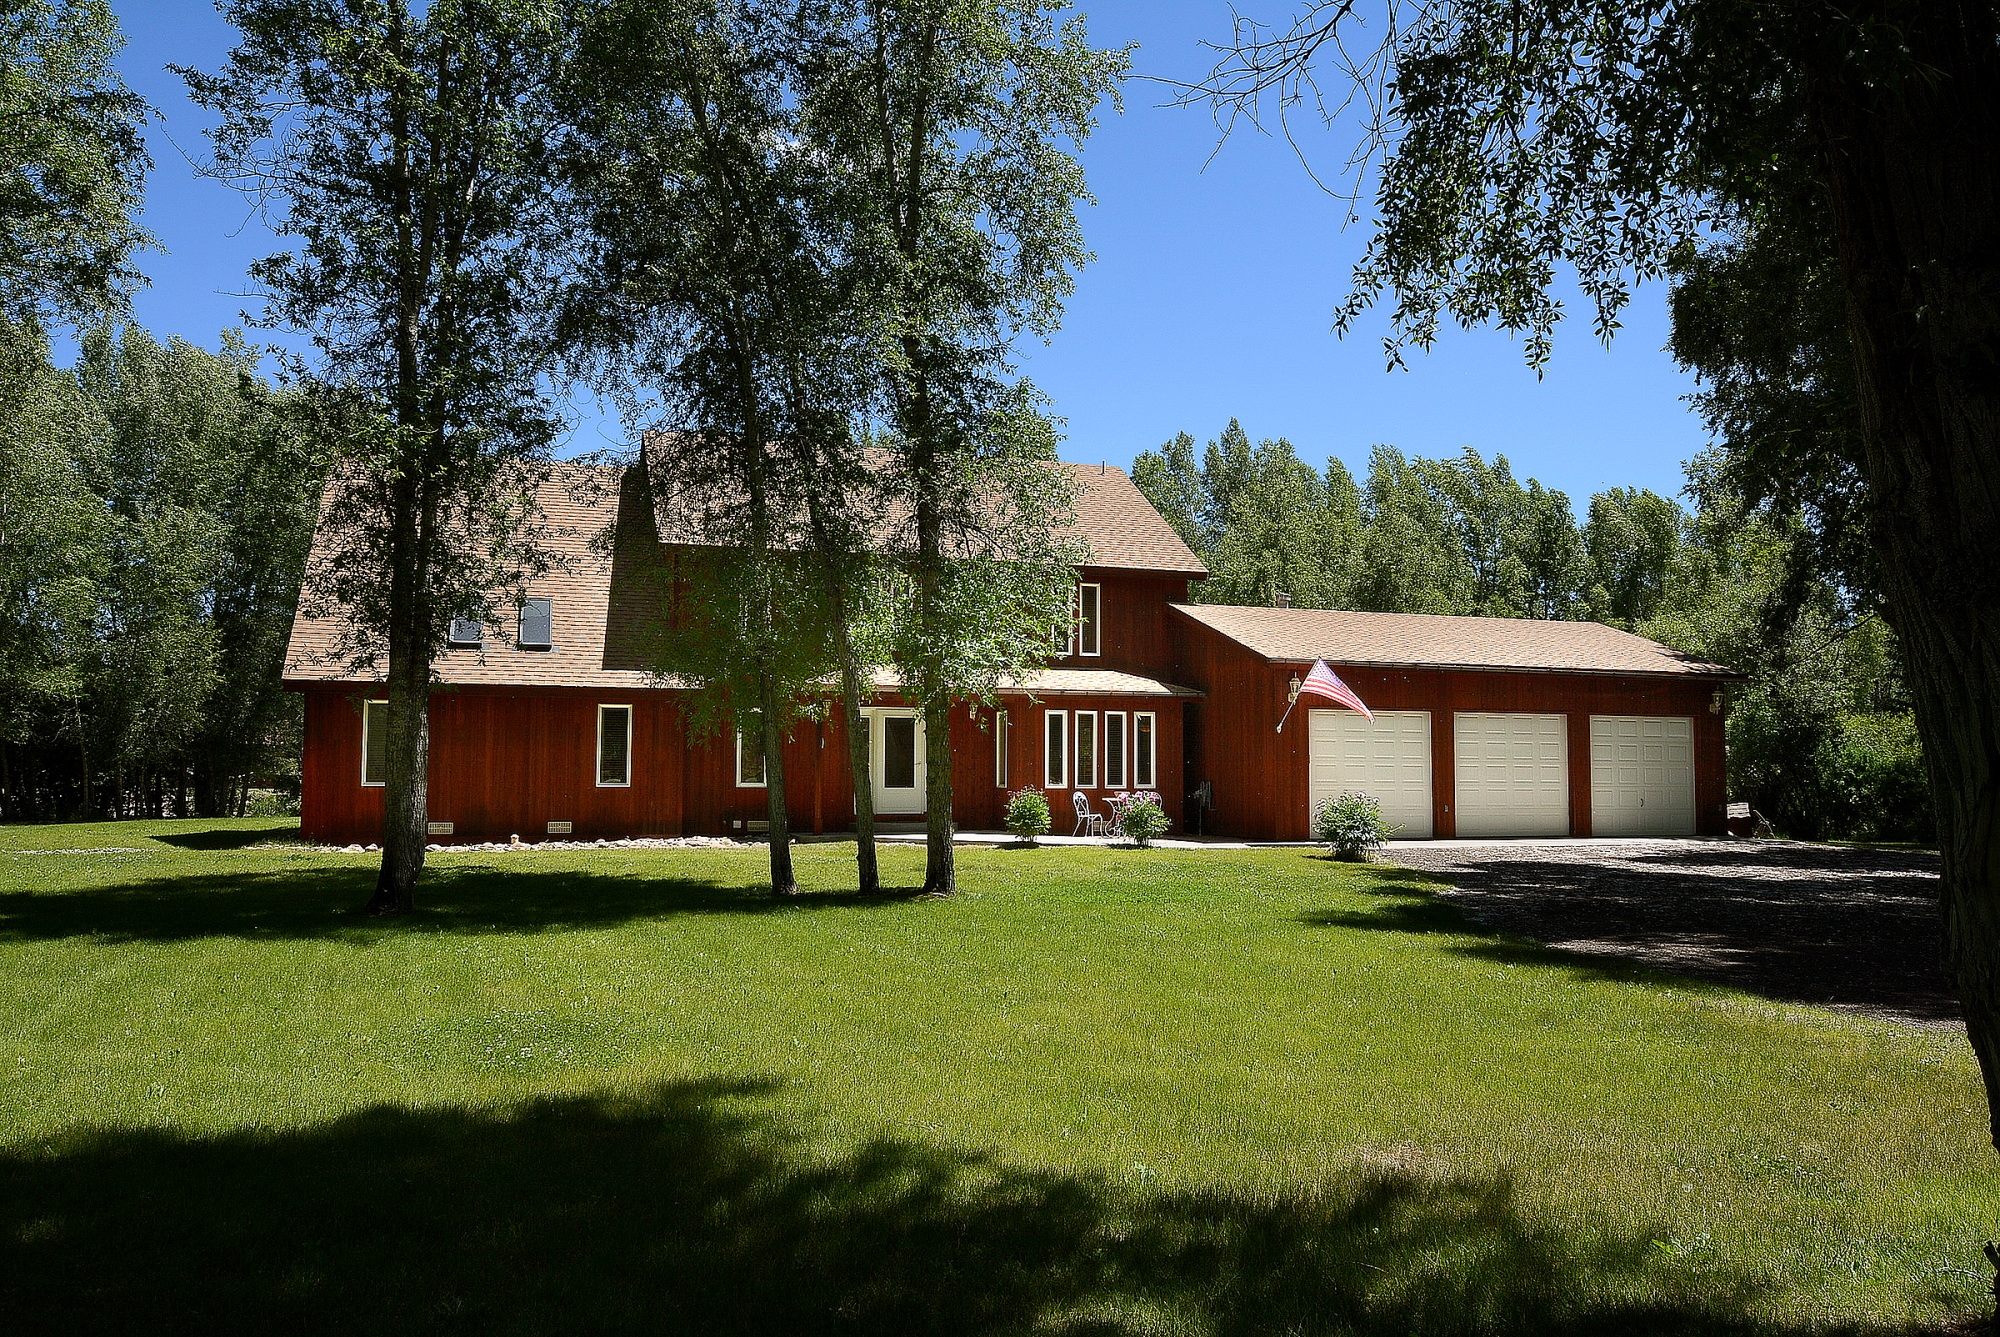 Single Family Home for Sale at Spectacular River Front Home 42 W. Cottonwood Road Gunnison, Colorado 81230 United States